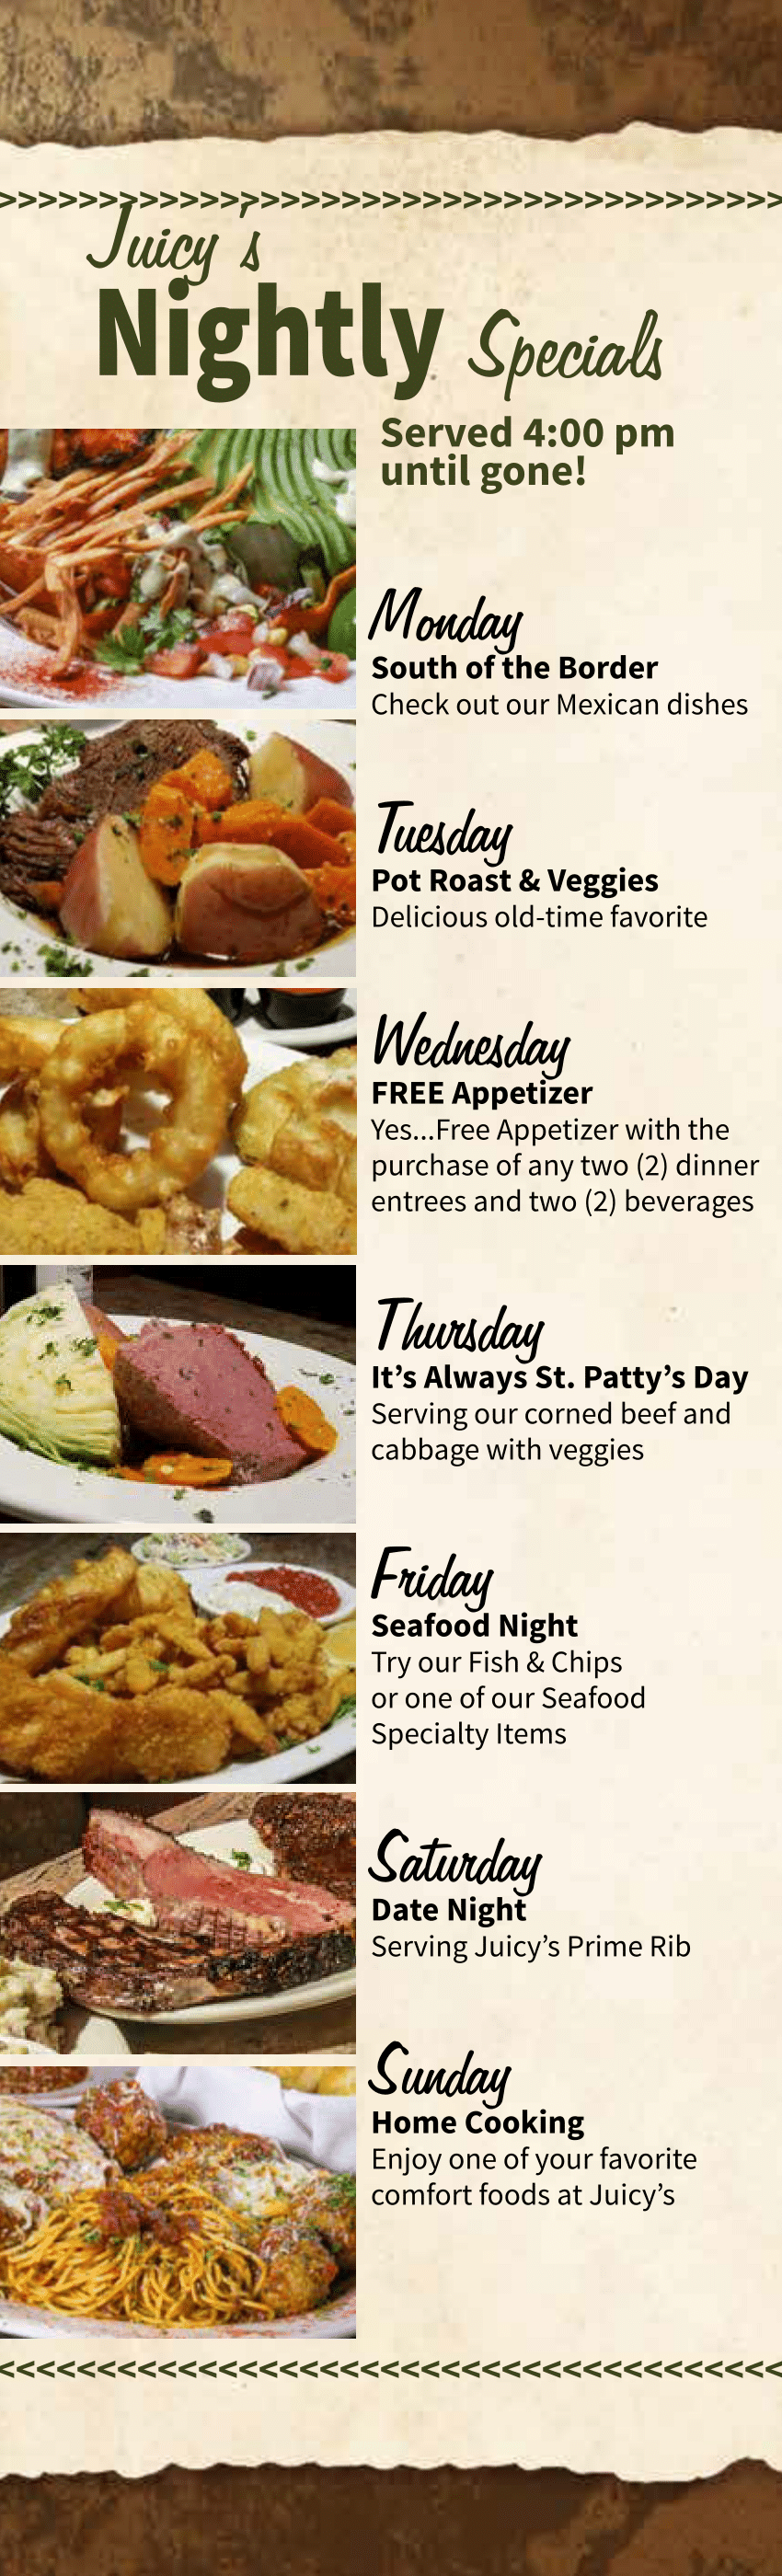 Juicy's New Menu Inserts Feb 2017-3.png